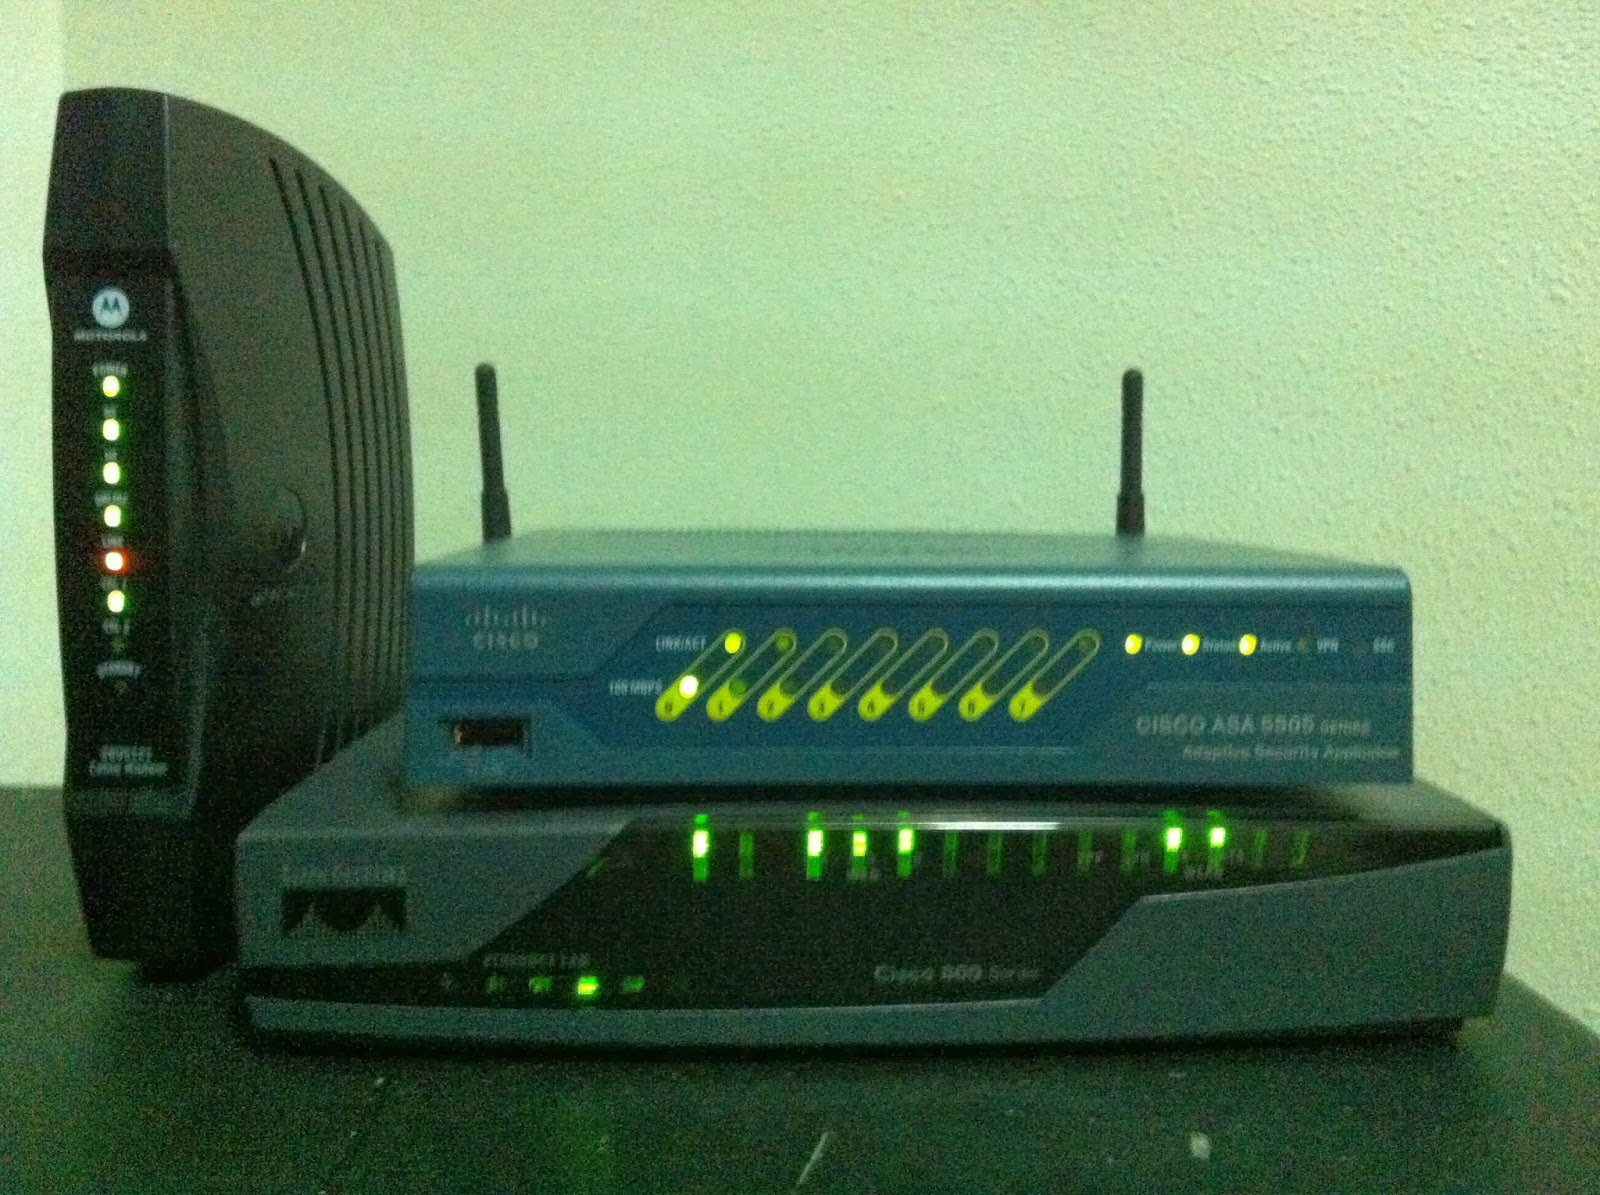 My Network Lab: Configuring My Cisco ASA 5505 Home Lab Firewall